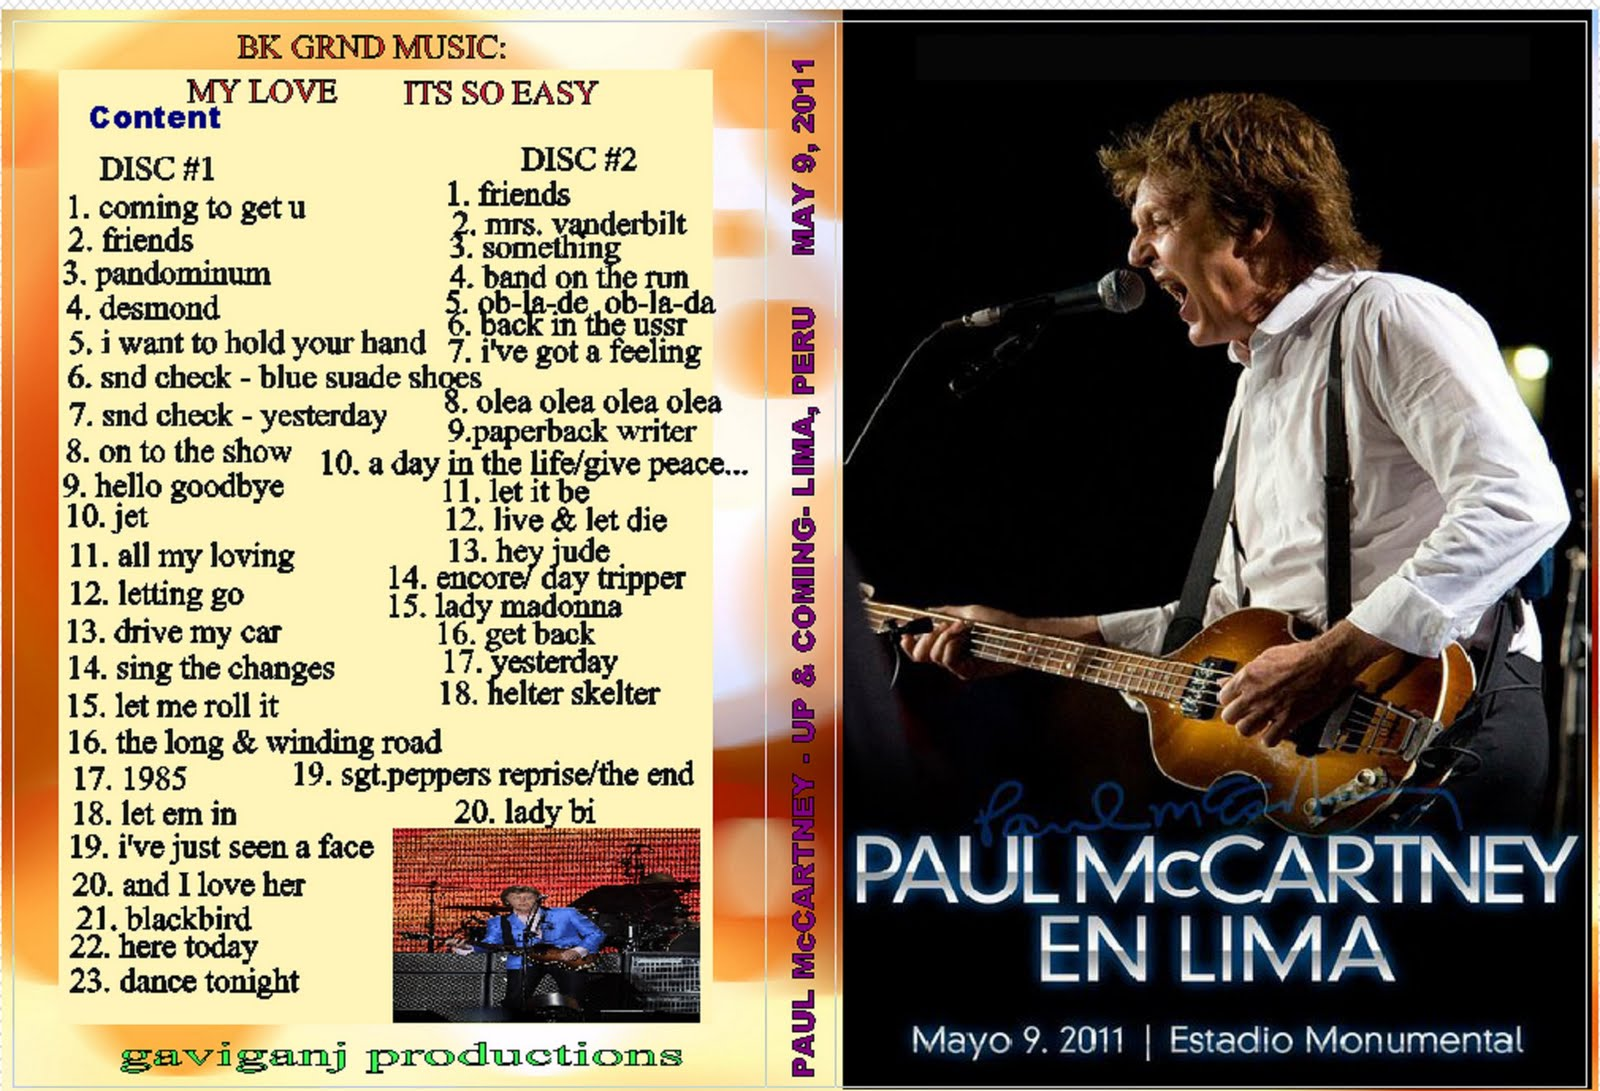 http://3.bp.blogspot.com/-saphNJu0zo0/Td5313iyb9I/AAAAAAAAC1g/3W0b1ENlTxw/s1600/DVD+Cover+-+PAUL+McCARTNEY+-+UP+%2526+COMING+-LIMA%252CPERU+MAY+9%252C+2011.jpg